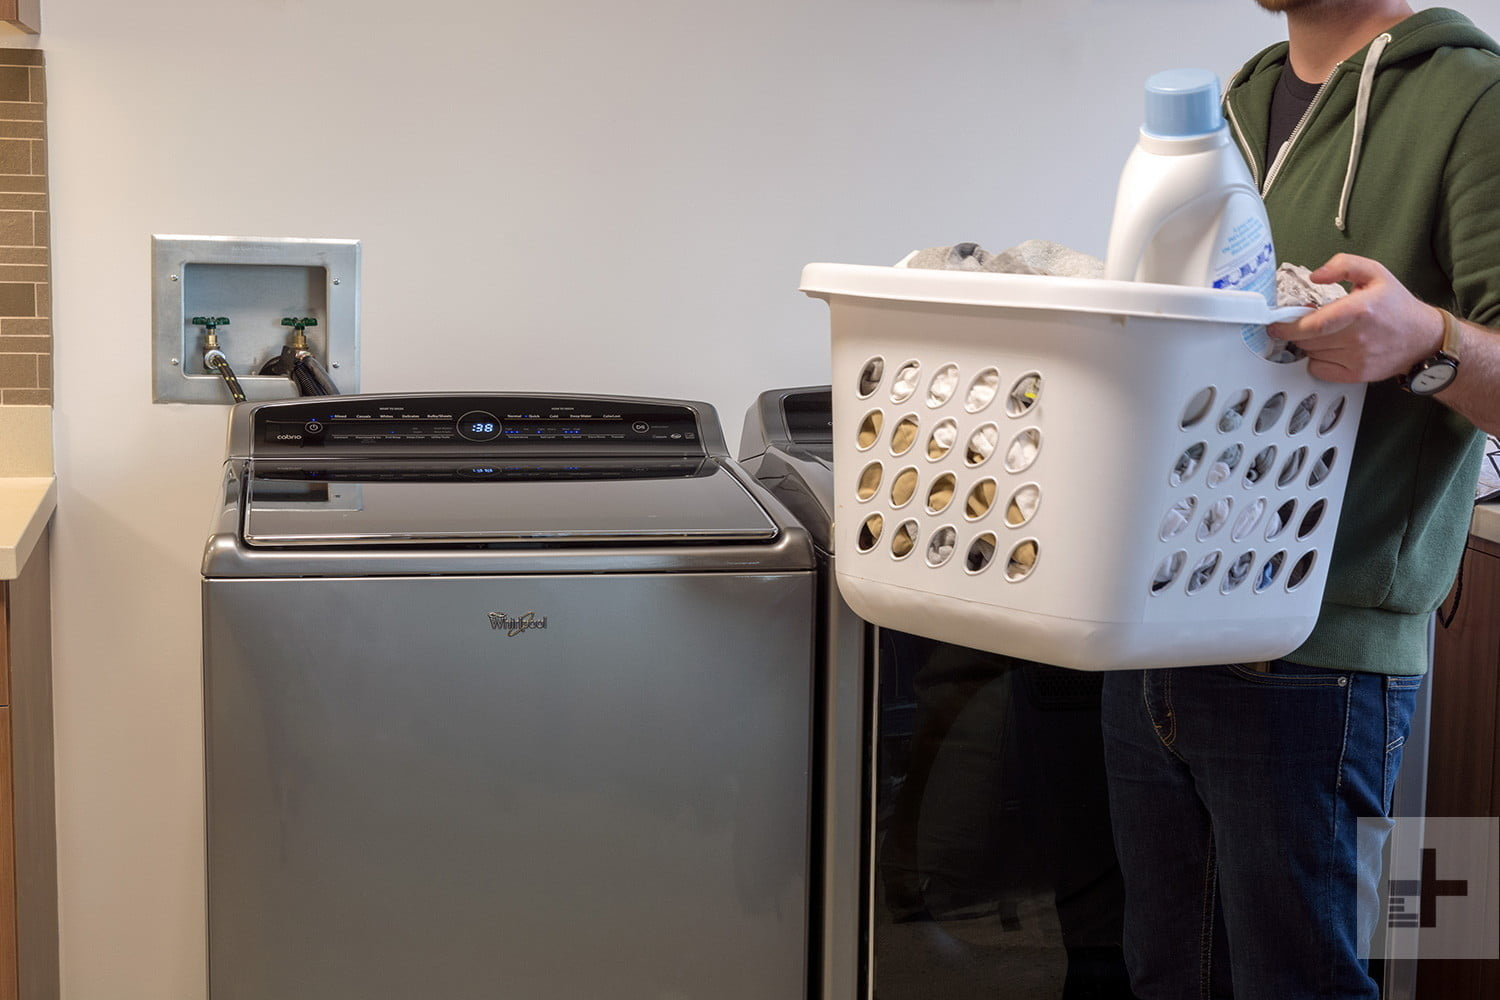 Not Just Spin How To Buy A Washer And Dryer Digital Trends